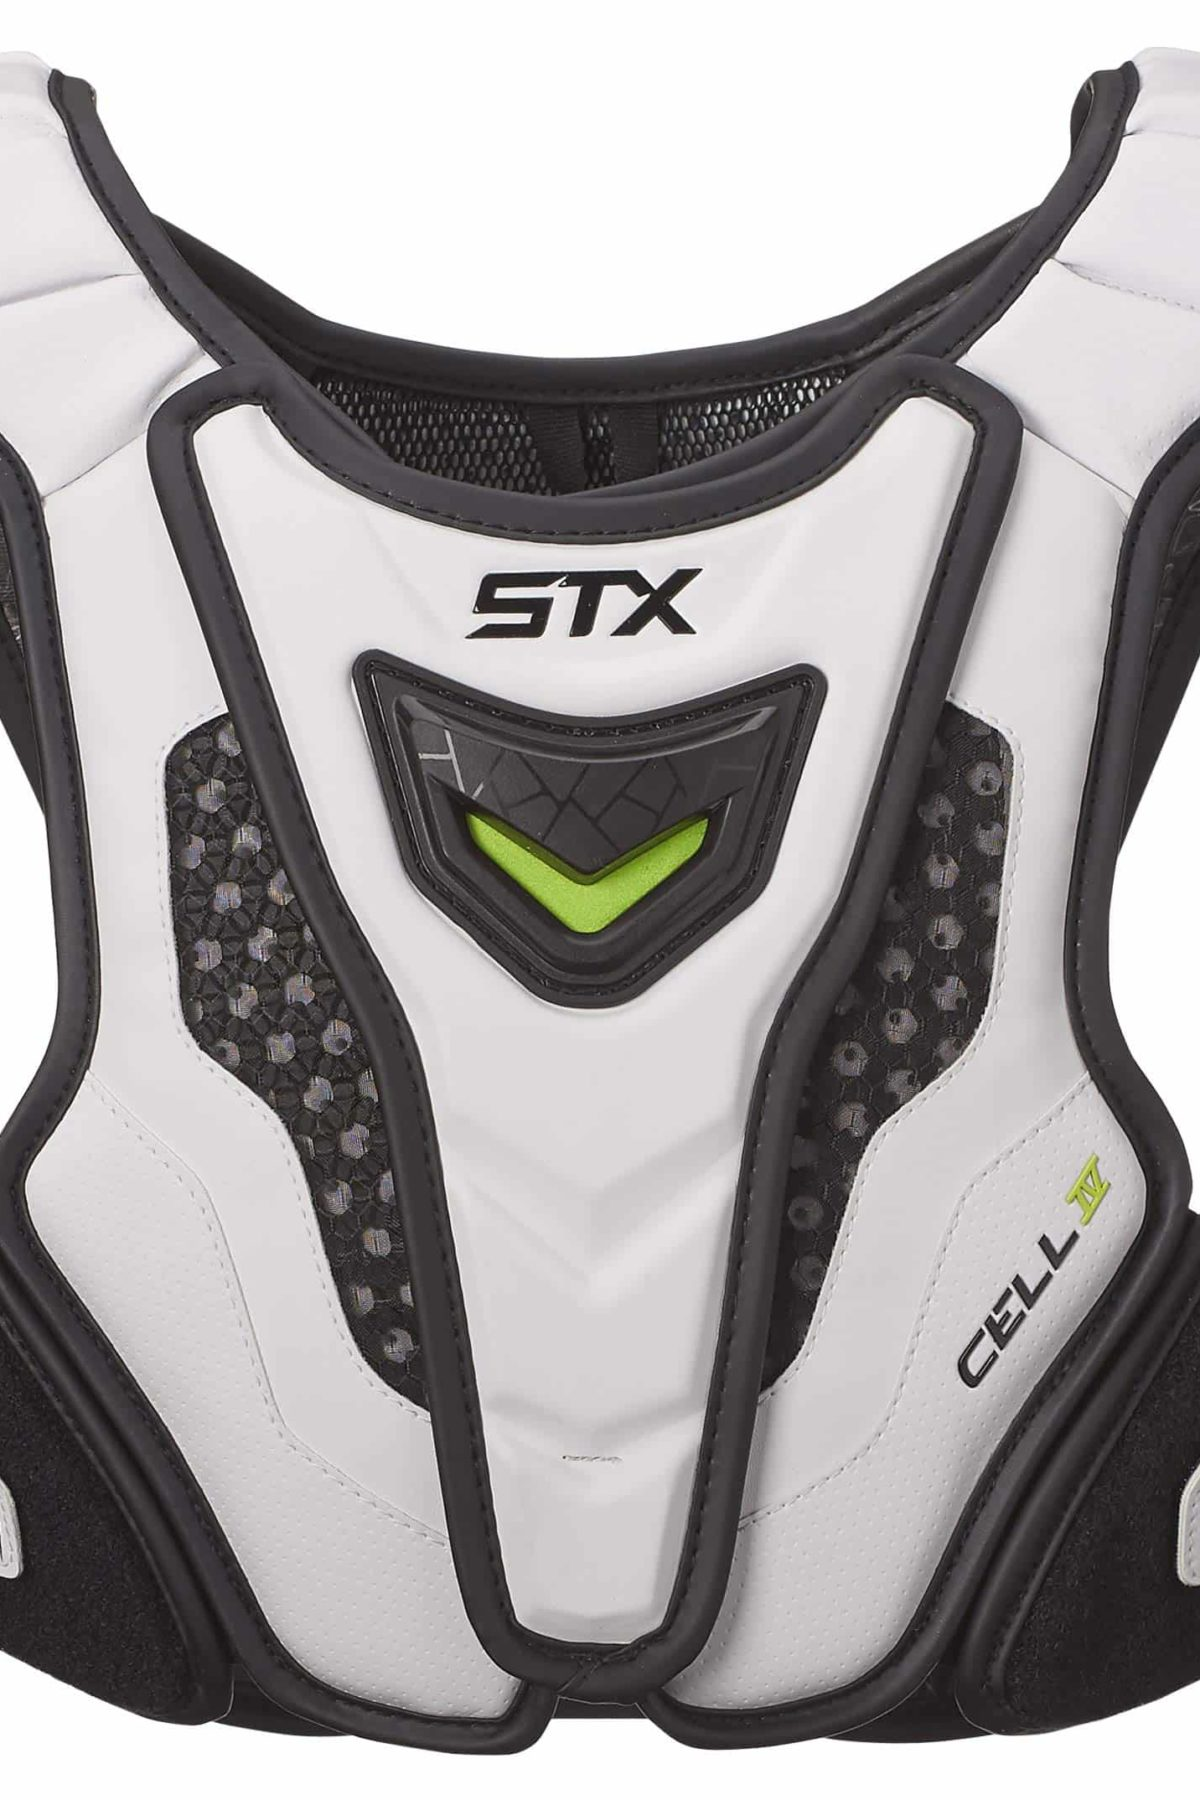 stx lacrosse cell 4 | 81RD3tRVPEL 1200x1800 cropped